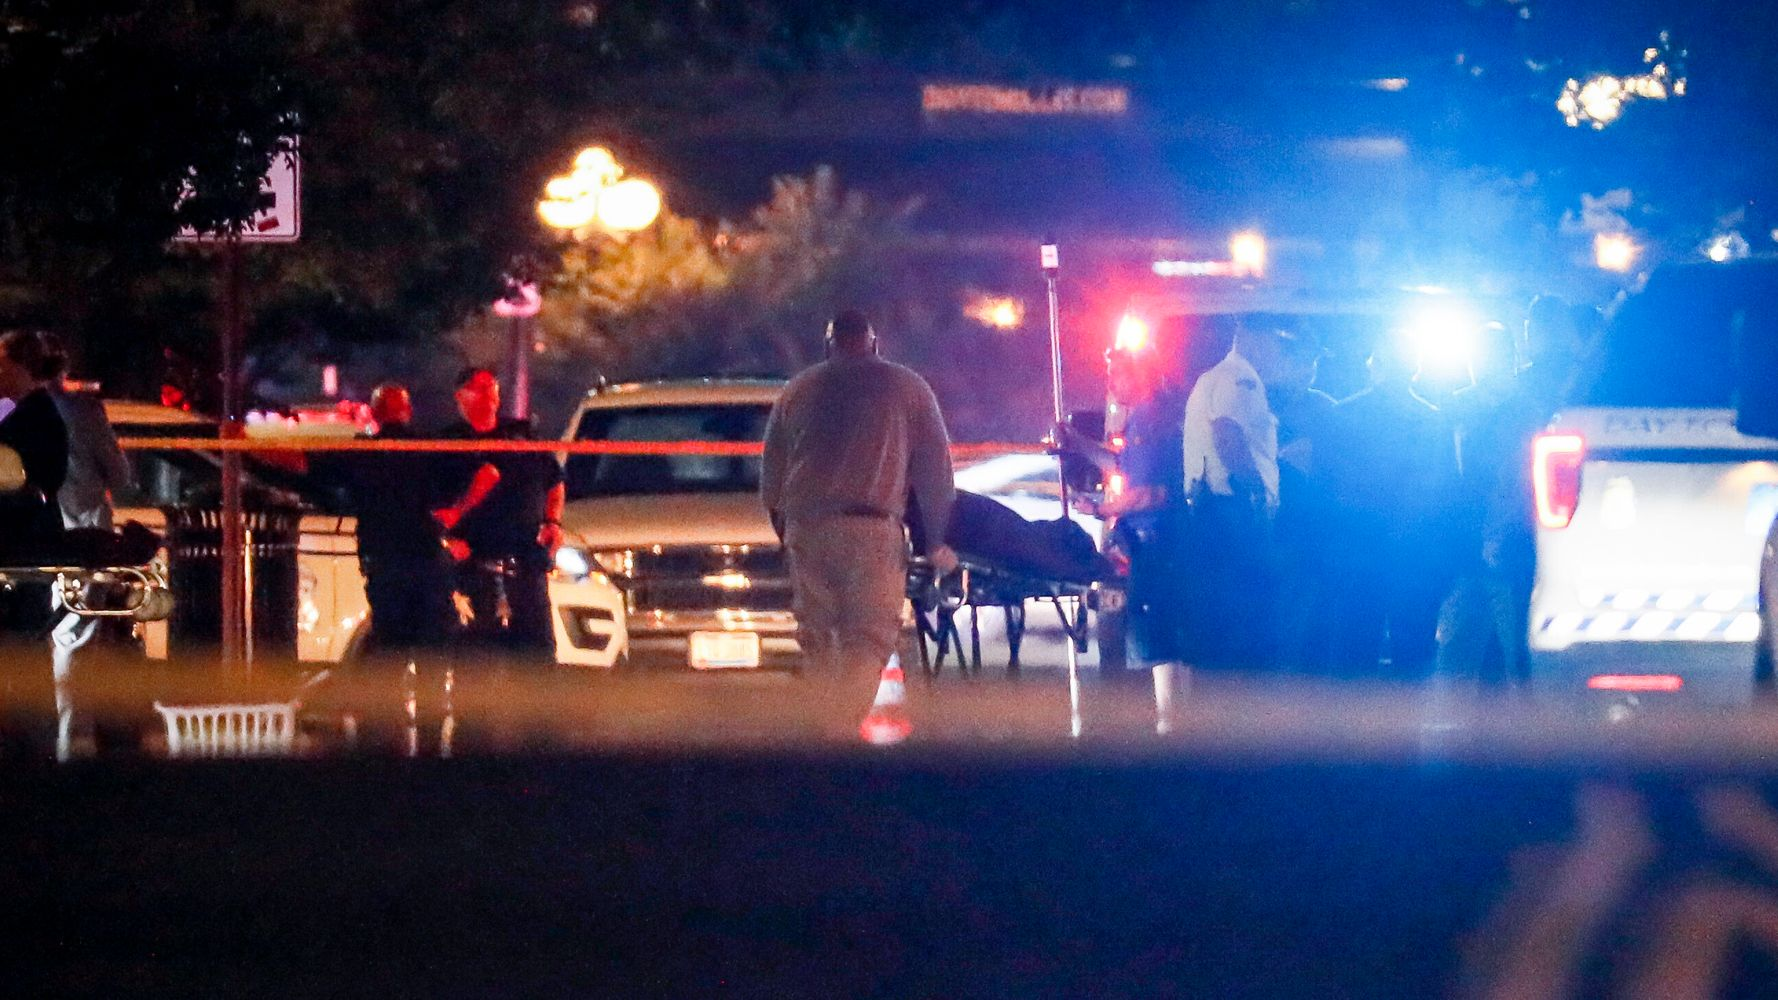 Mass Shooting In Dayton, Ohio, Leaves At Least 9 Dead, 27